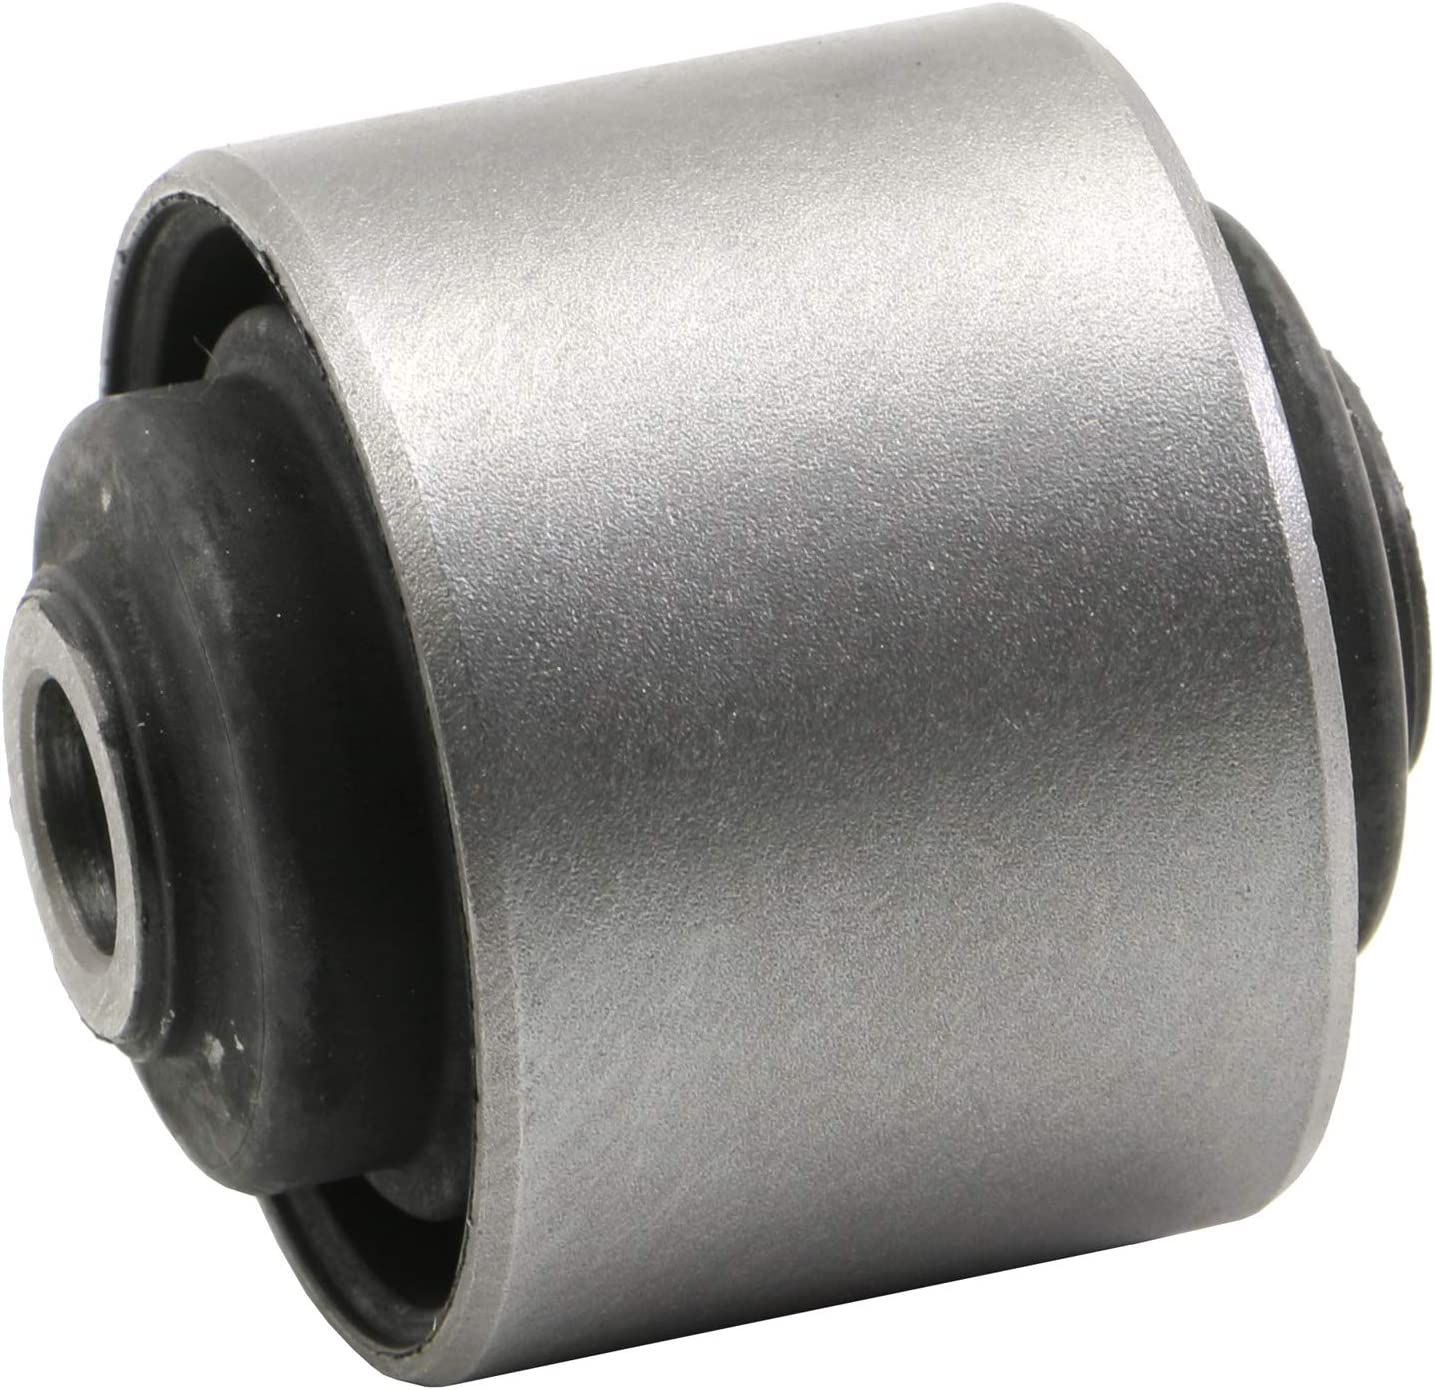 MOOG Chassis Products K201705 Trailing Arm Bushing